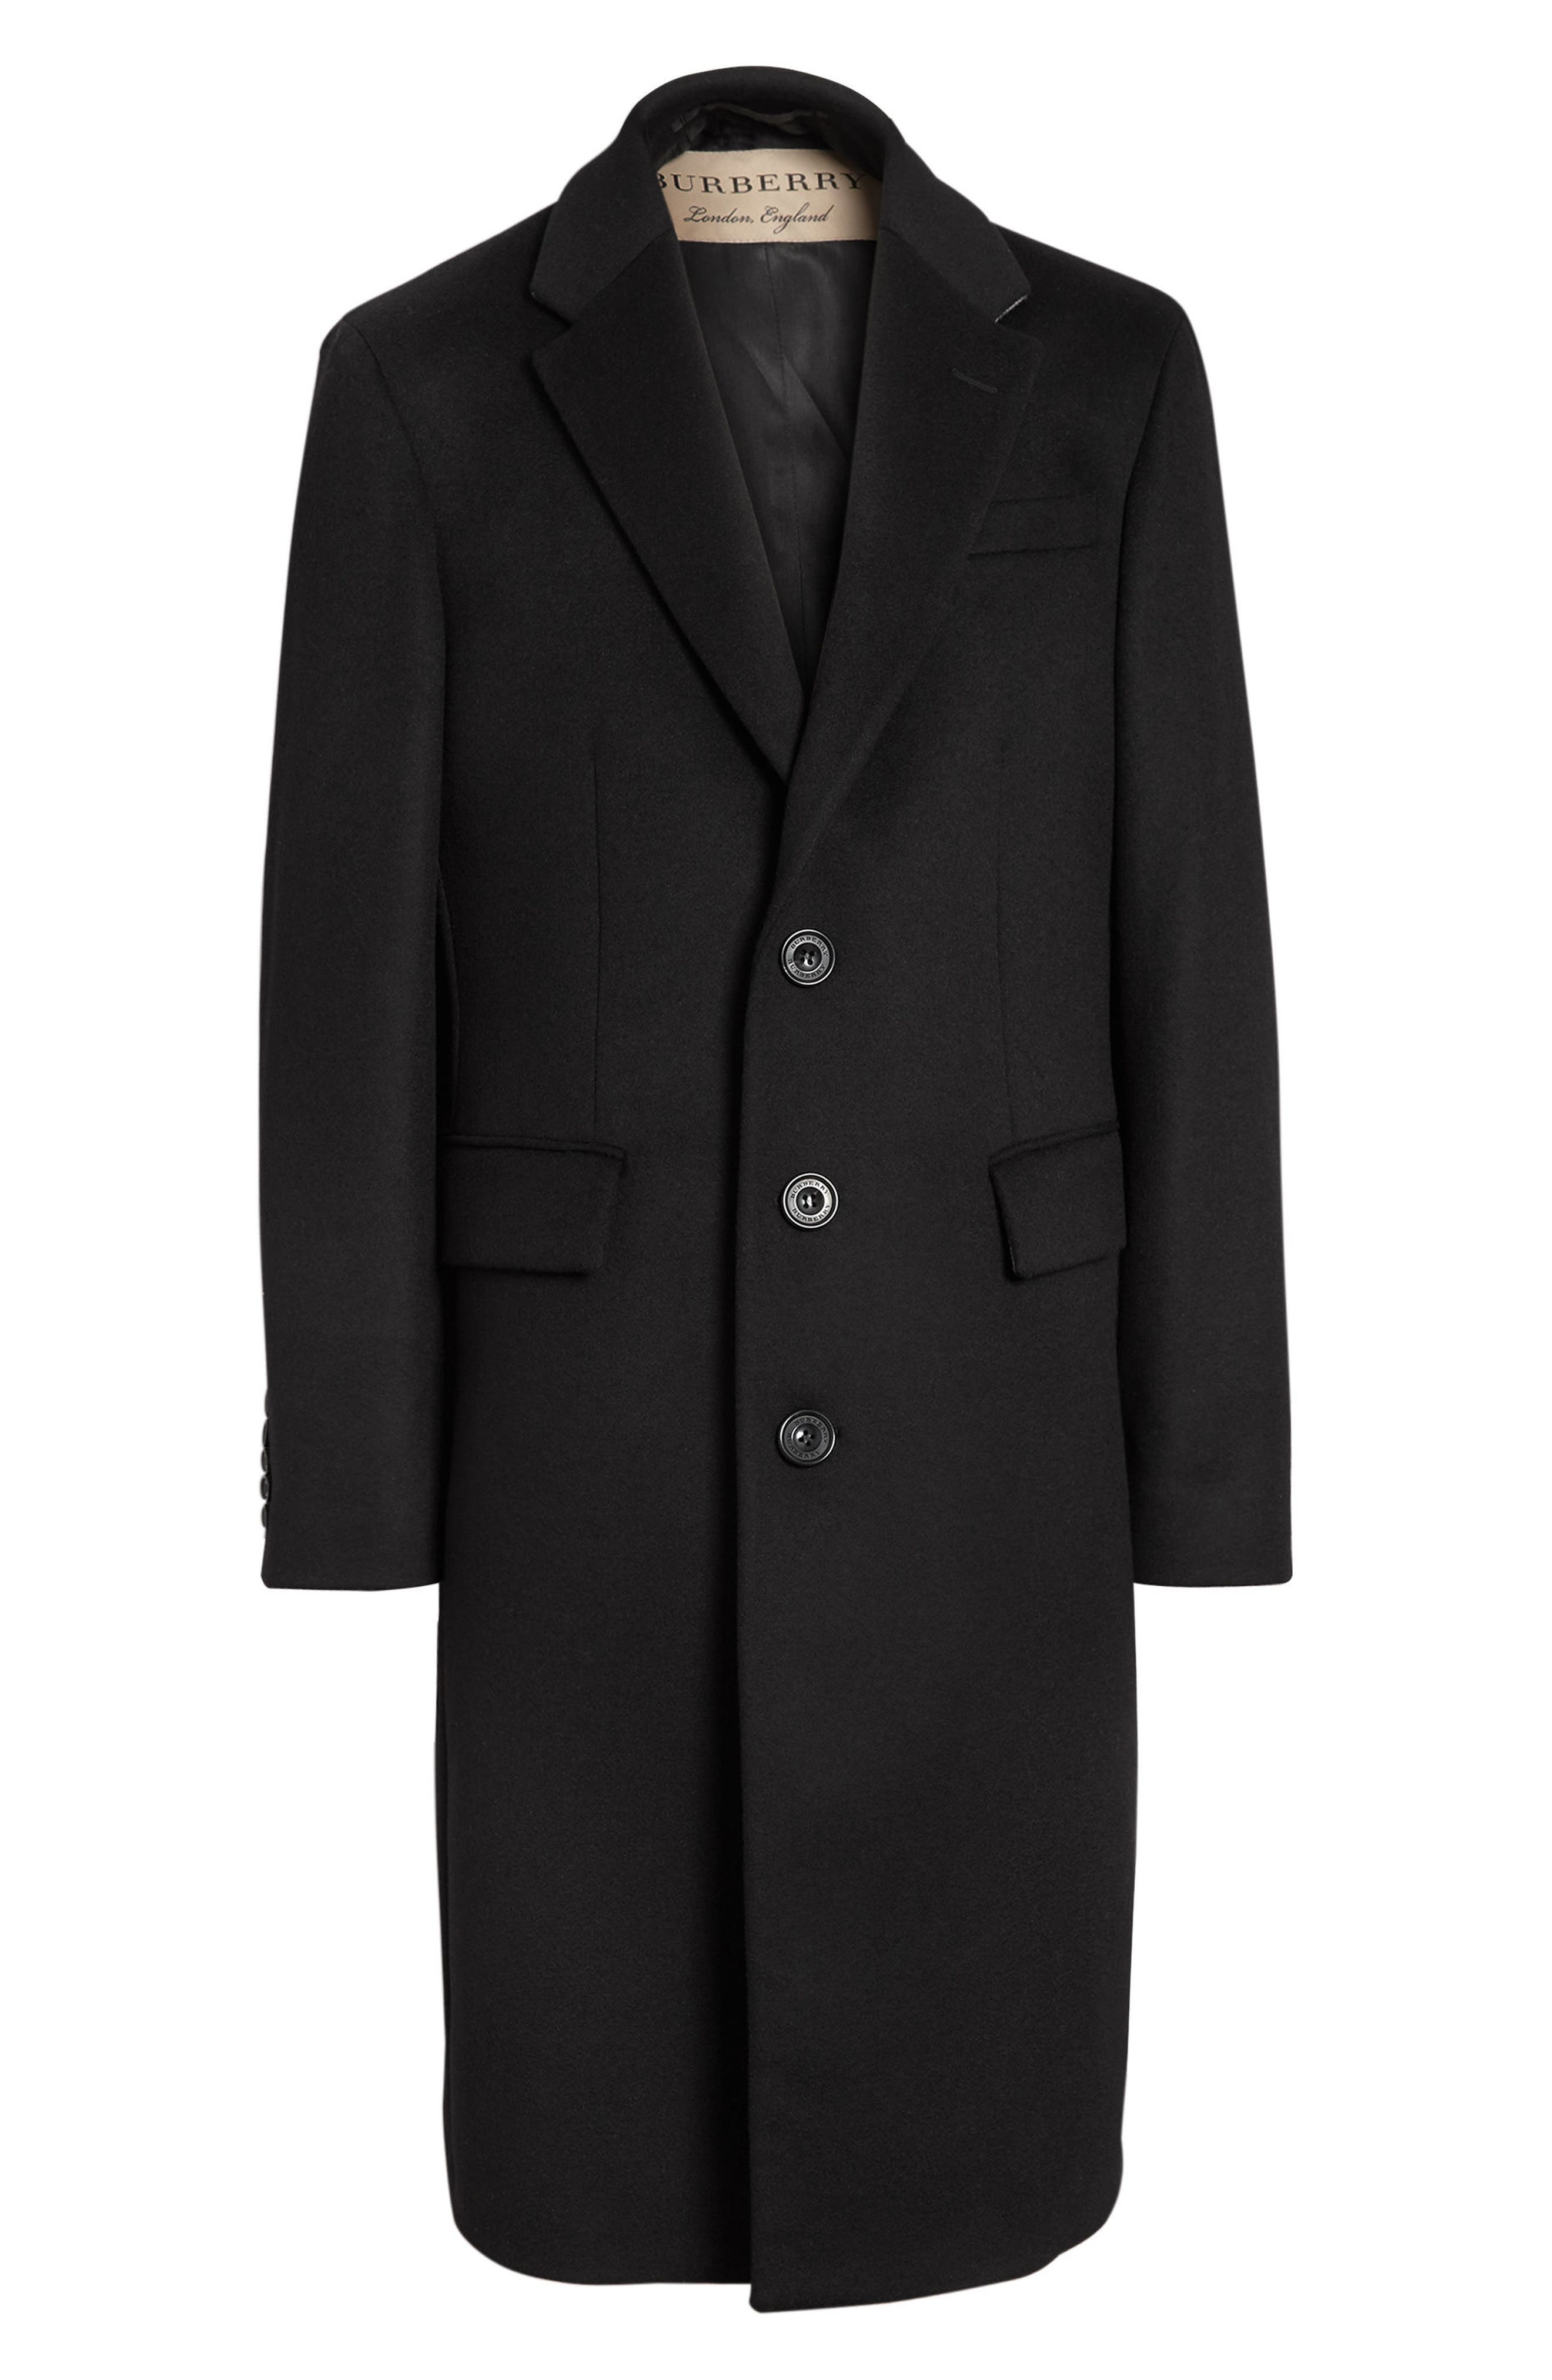 BURBERRY,                             Halesowen Wool and Cashmere Overcoat,                             Alternate thumbnail 4, color,                             001